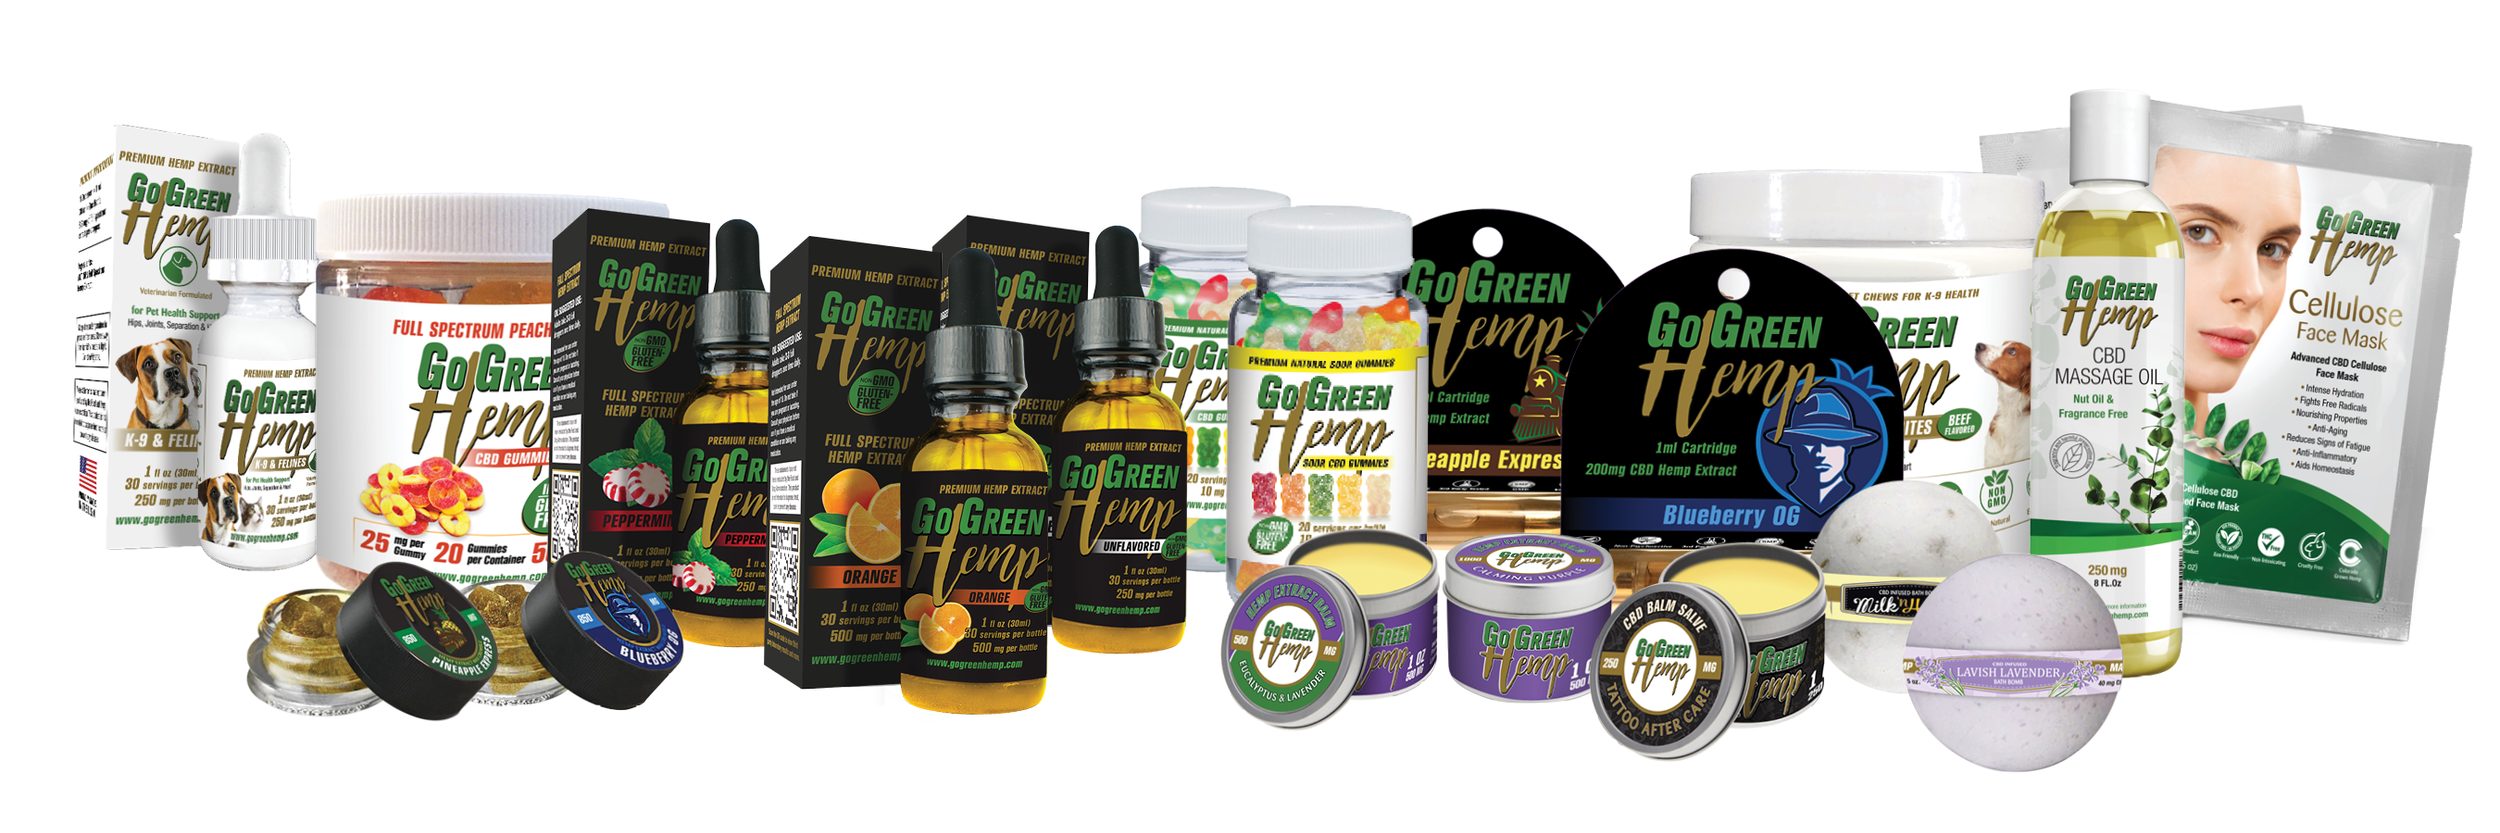 GoGreen Hemp | One Stop Shop For Everything CBD